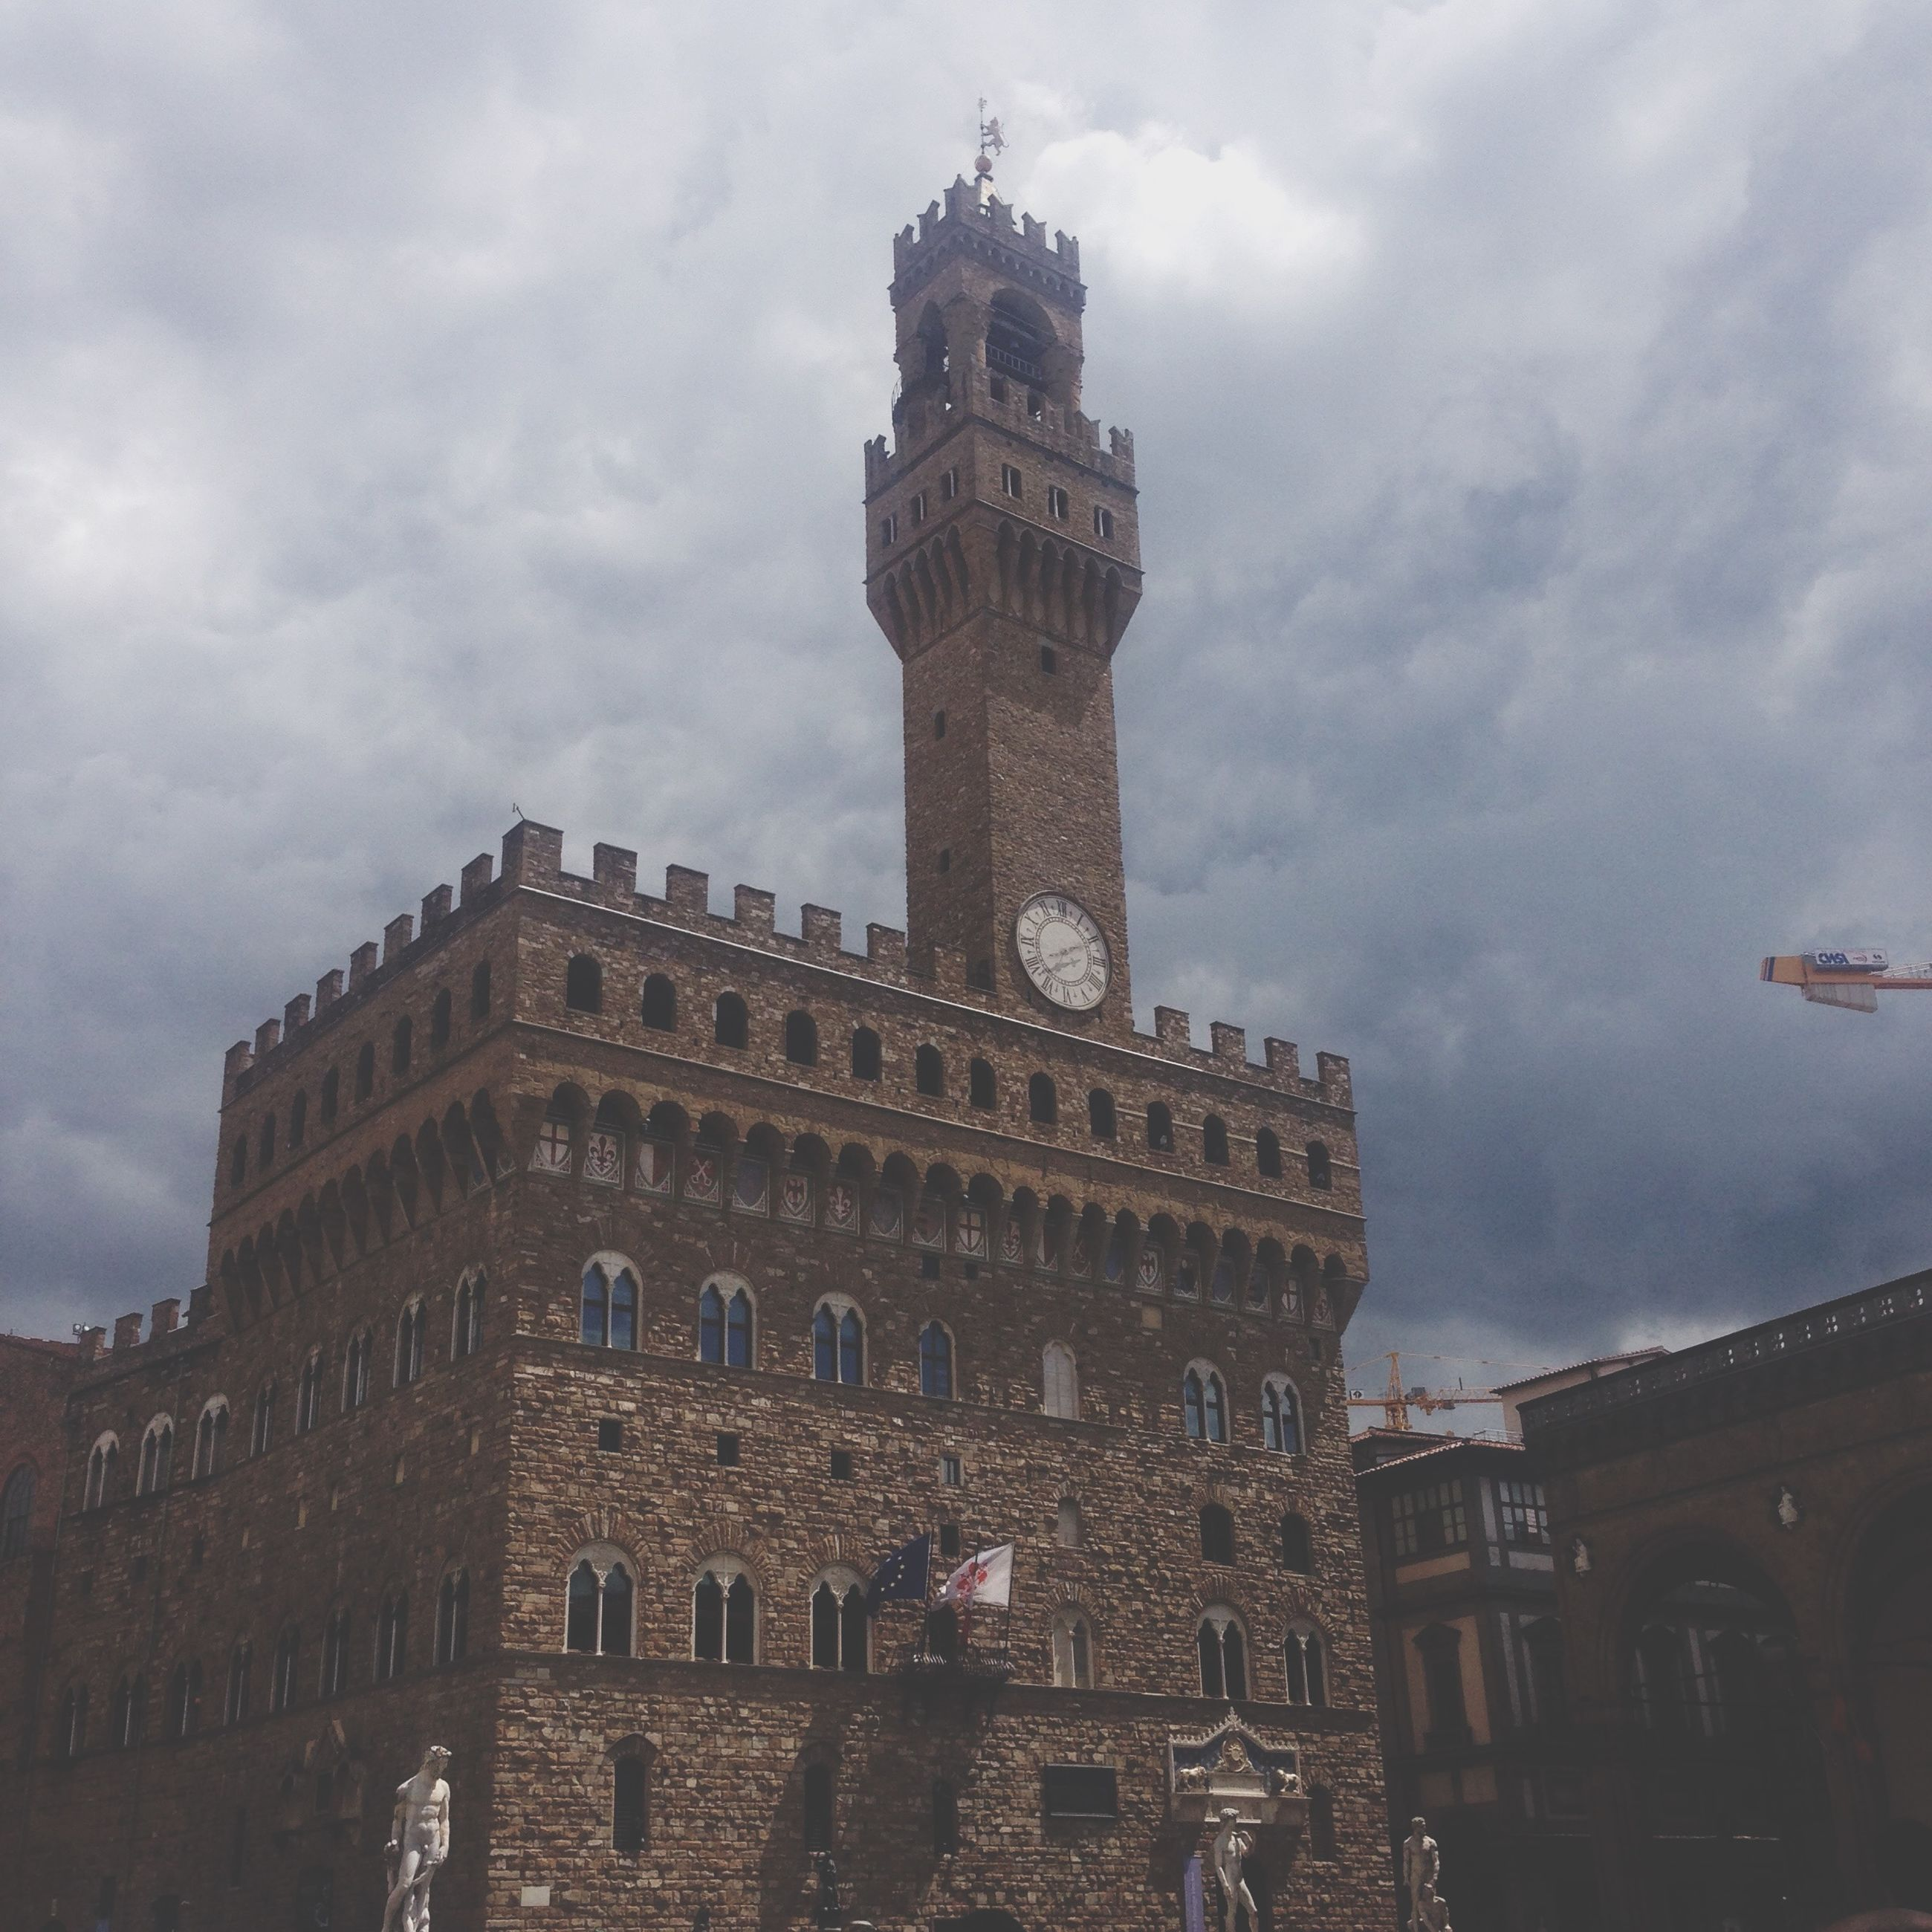 architecture, built structure, building exterior, sky, cloud - sky, low angle view, cloudy, history, travel destinations, famous place, cloud, tower, travel, tourism, city, arch, old, clock tower, capital cities, religion